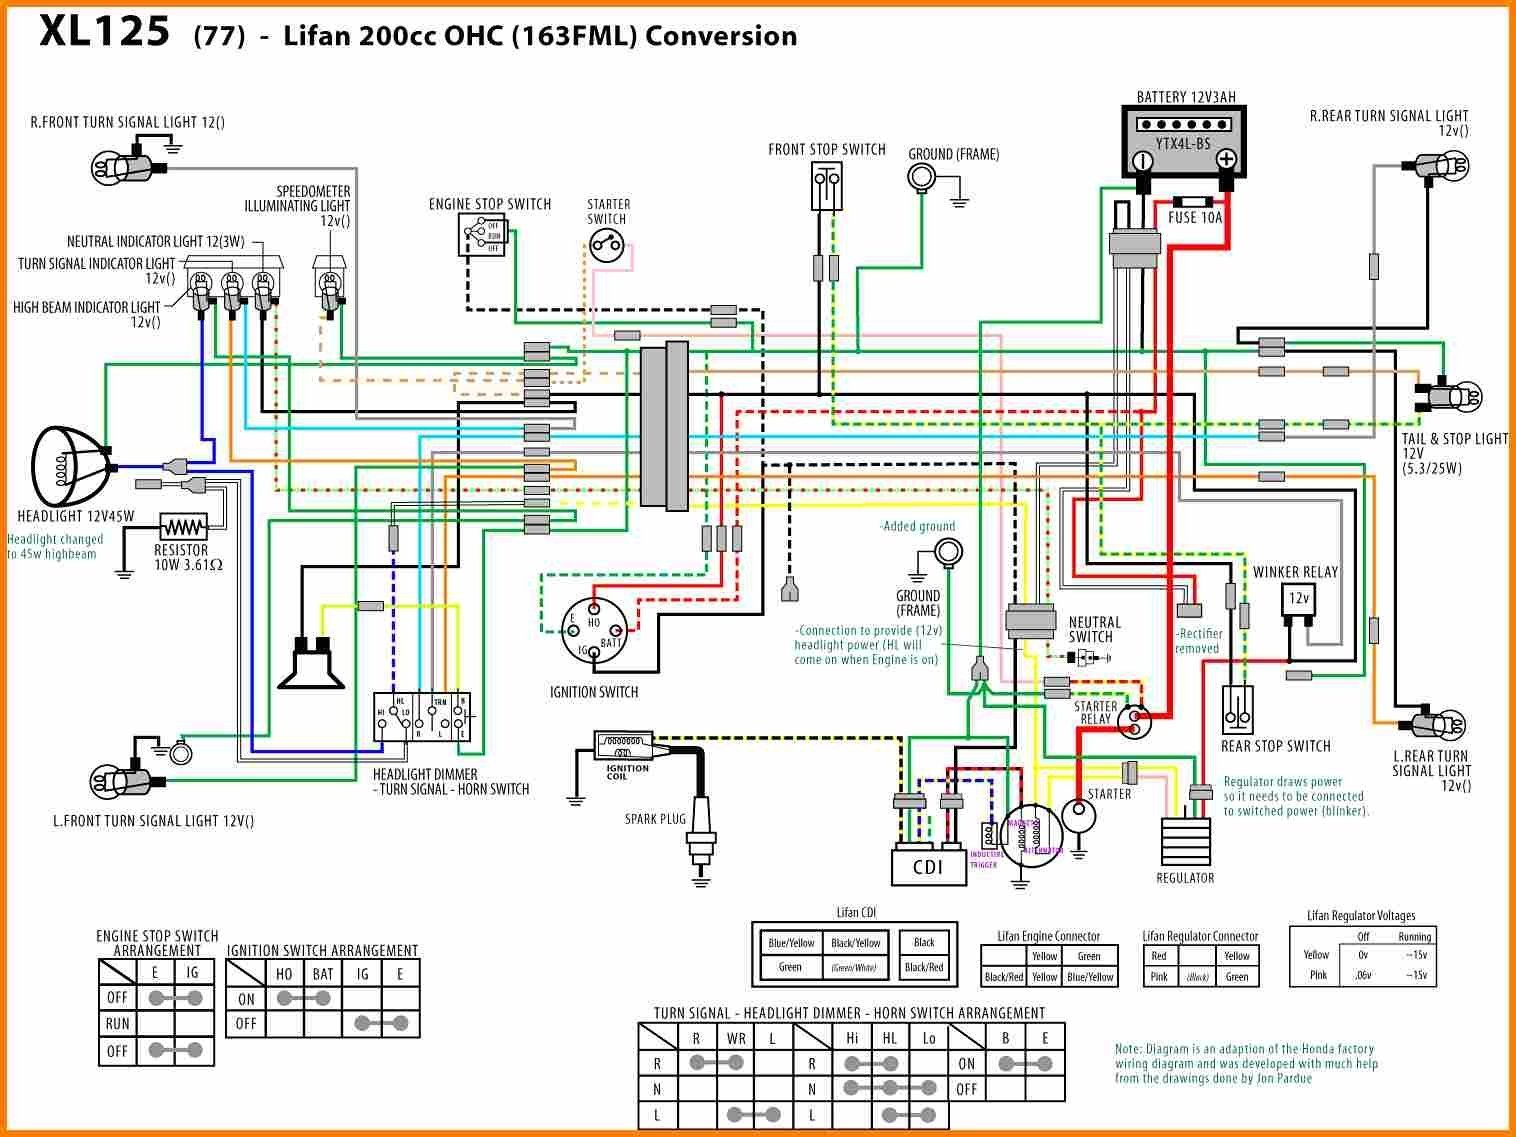 73314f16a186abea7c6544404379c71c Xrm Electrical Wiring Diagram on aeotec heavy duty, electric motor, kazuma lacoste, light switch, polaris atv, patch panel, phone block, for aprilaire model,